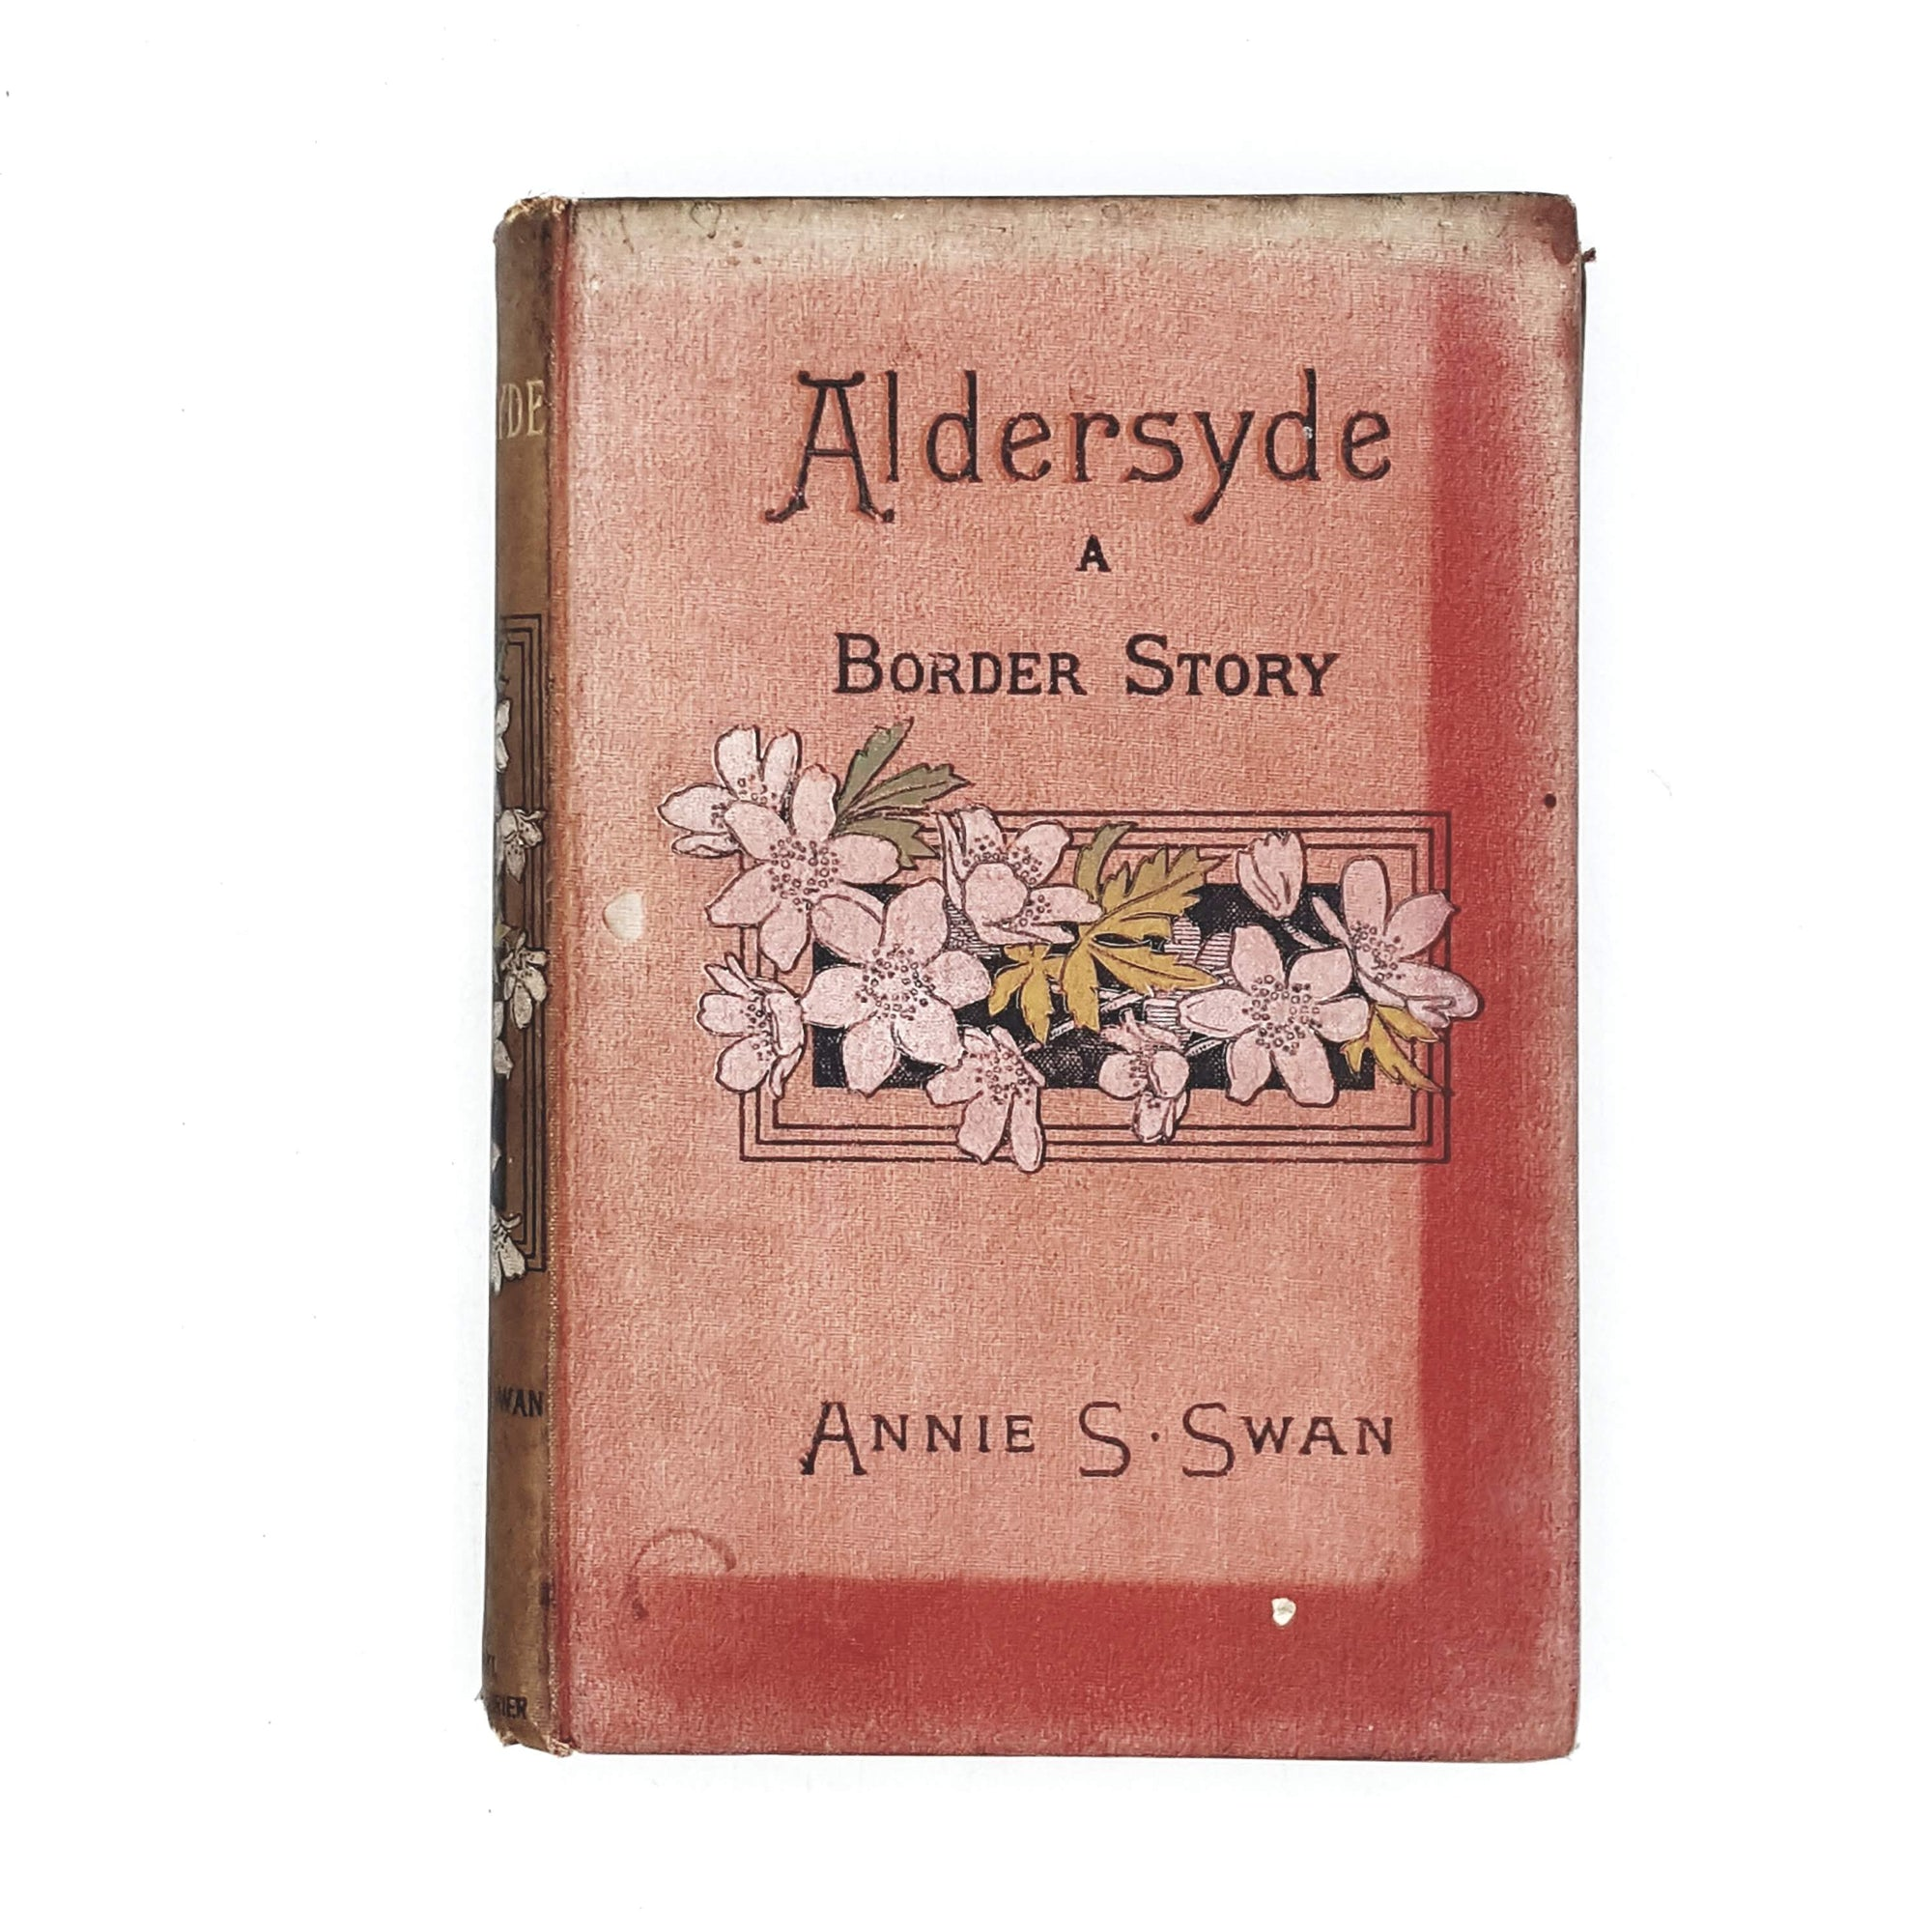 Aldersyde A Border Story by Annie S. Swan 1893